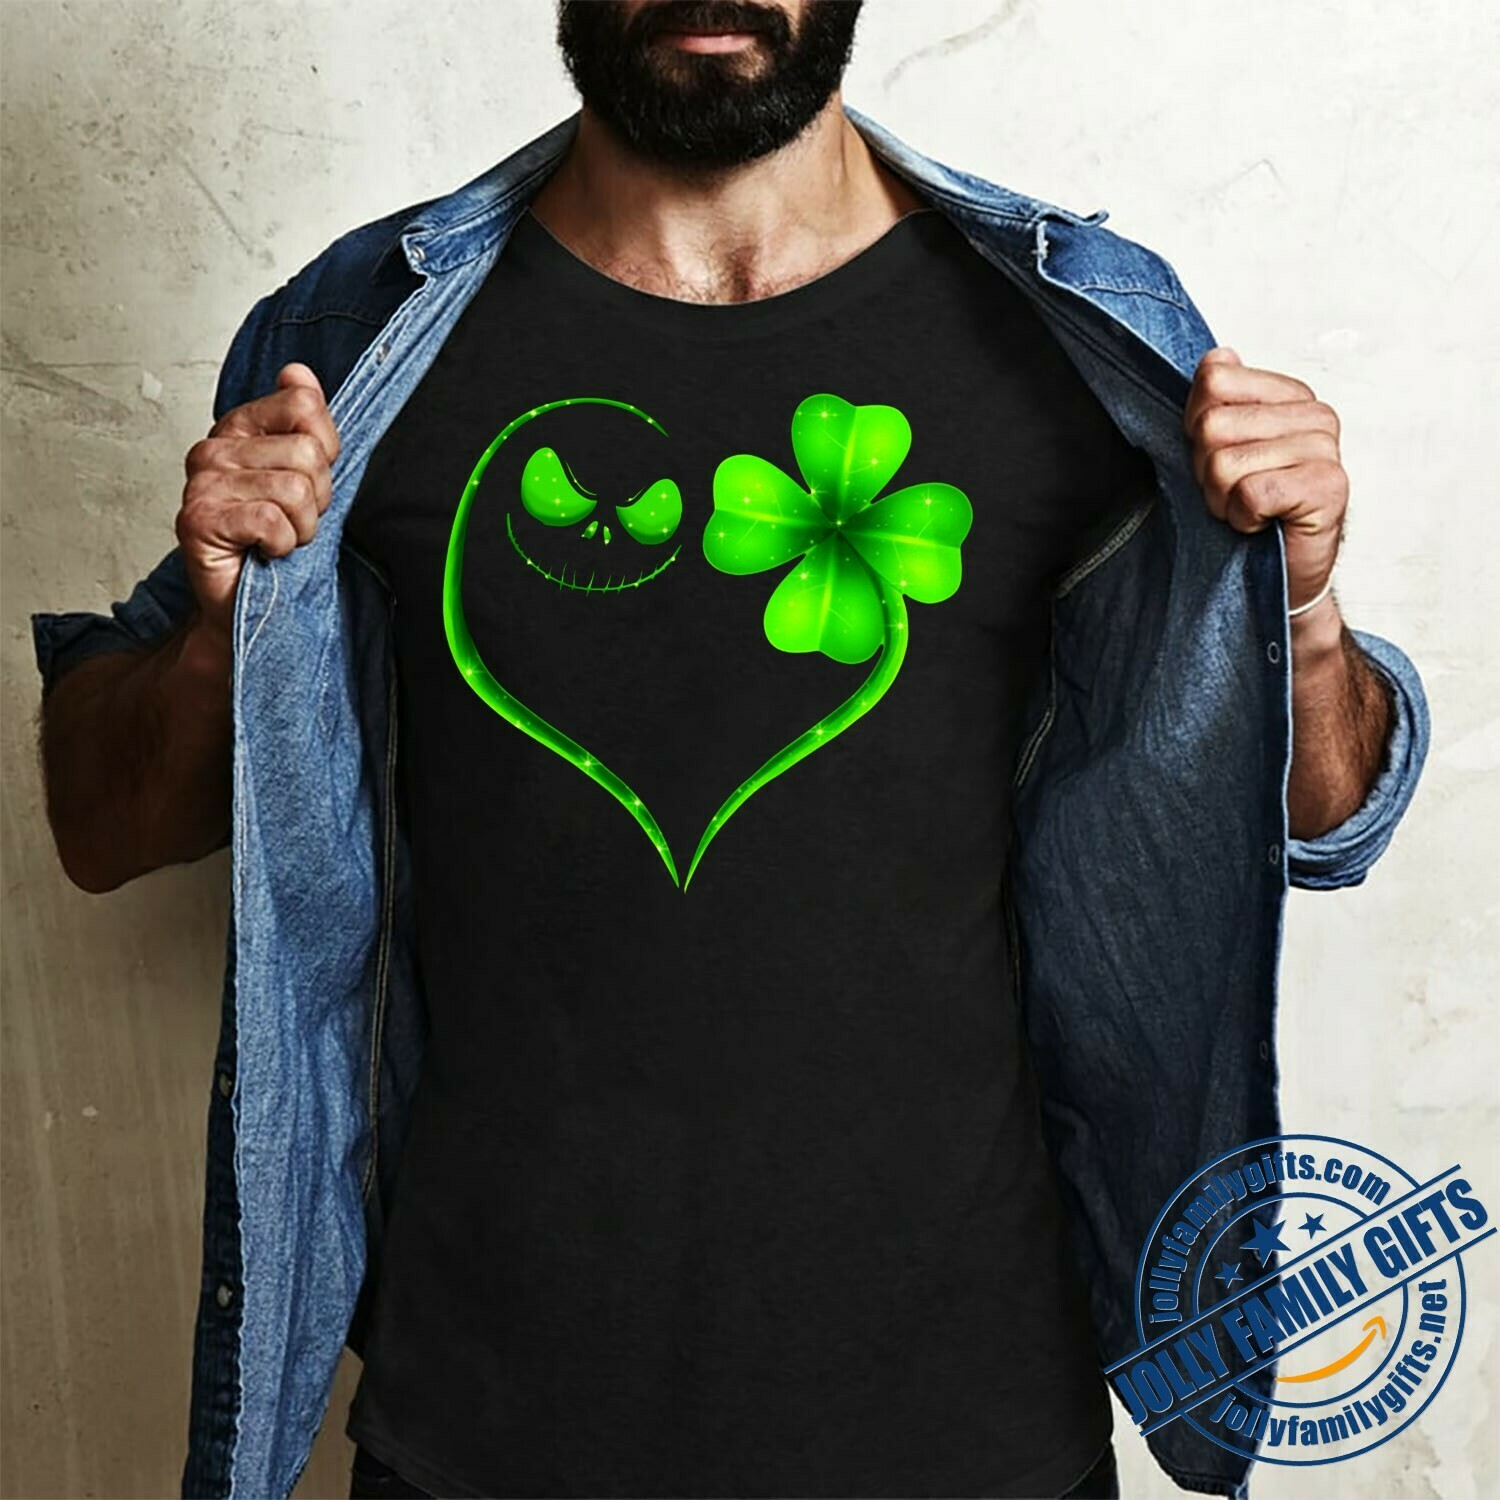 Hippie Peace sign St Patrick Day,Lucky Shamrock Peace Sign St Patrick's Day Racerback Tank,Hippie Flowery Round Car Magnet  Unisex T-Shirt Hoodie Sweatshirt Sweater Plus Size for Ladies Women Men Kids